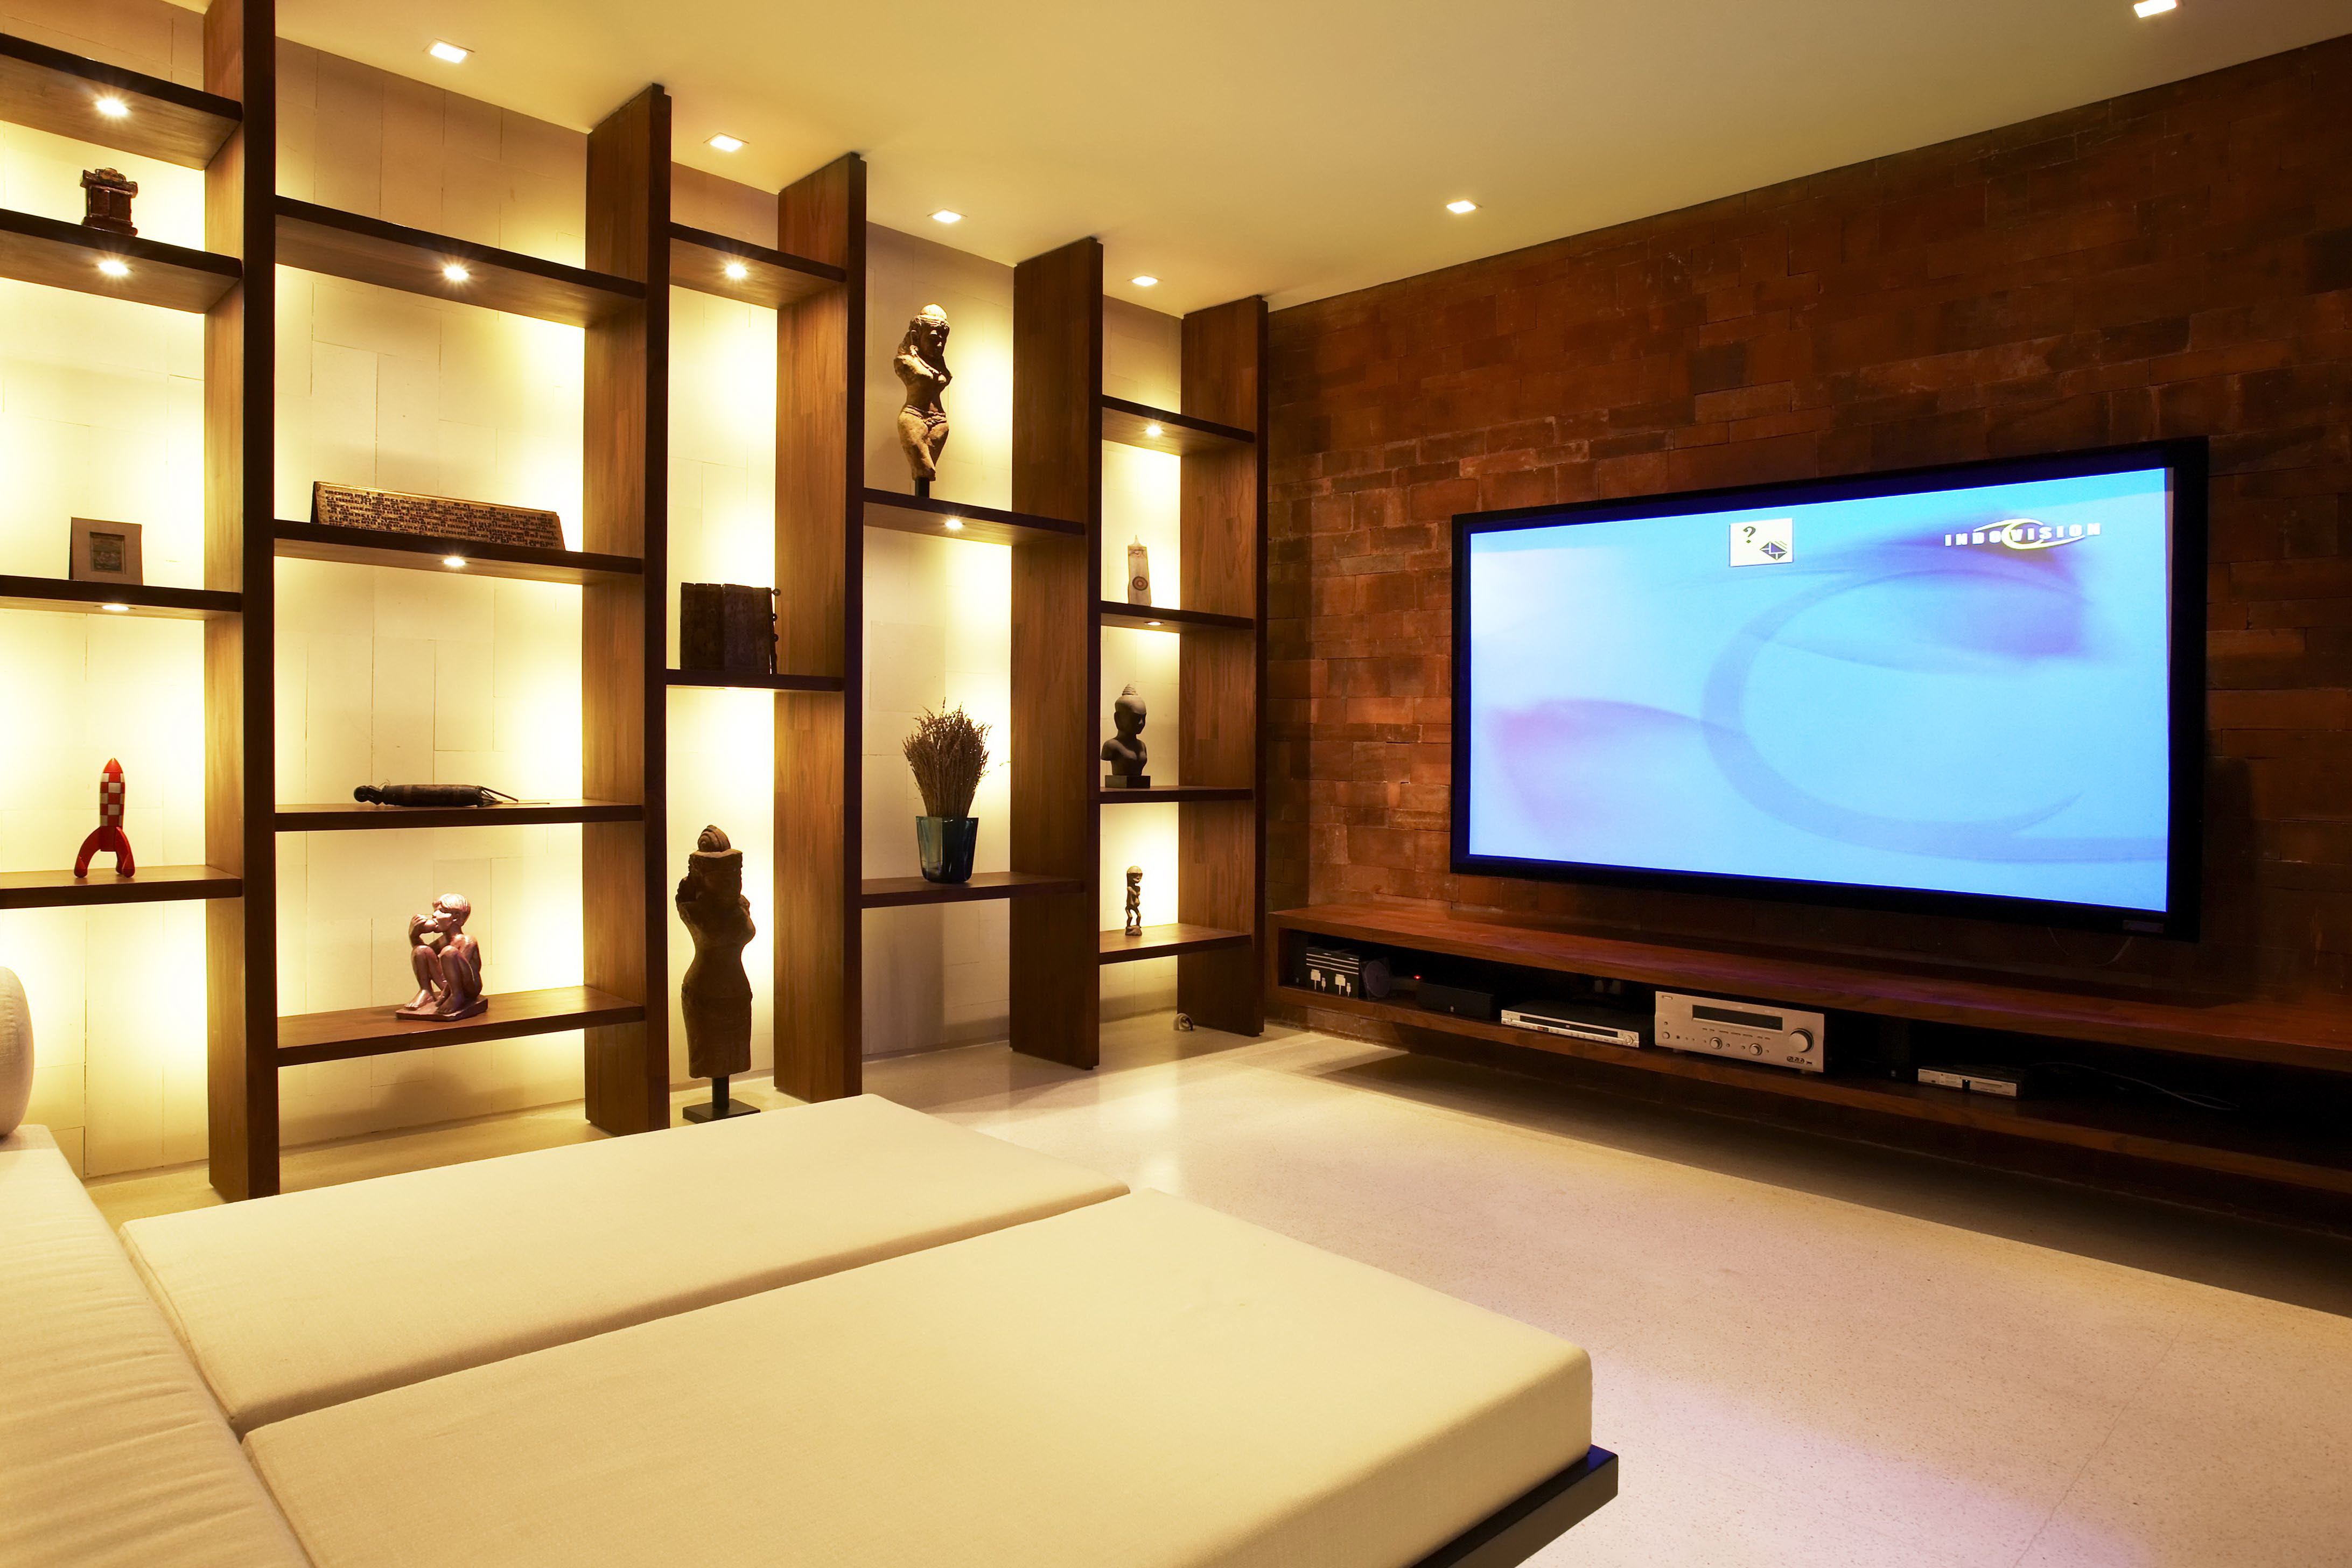 Villa Tukad Pangi Offers A State Of The Art Home Theatre